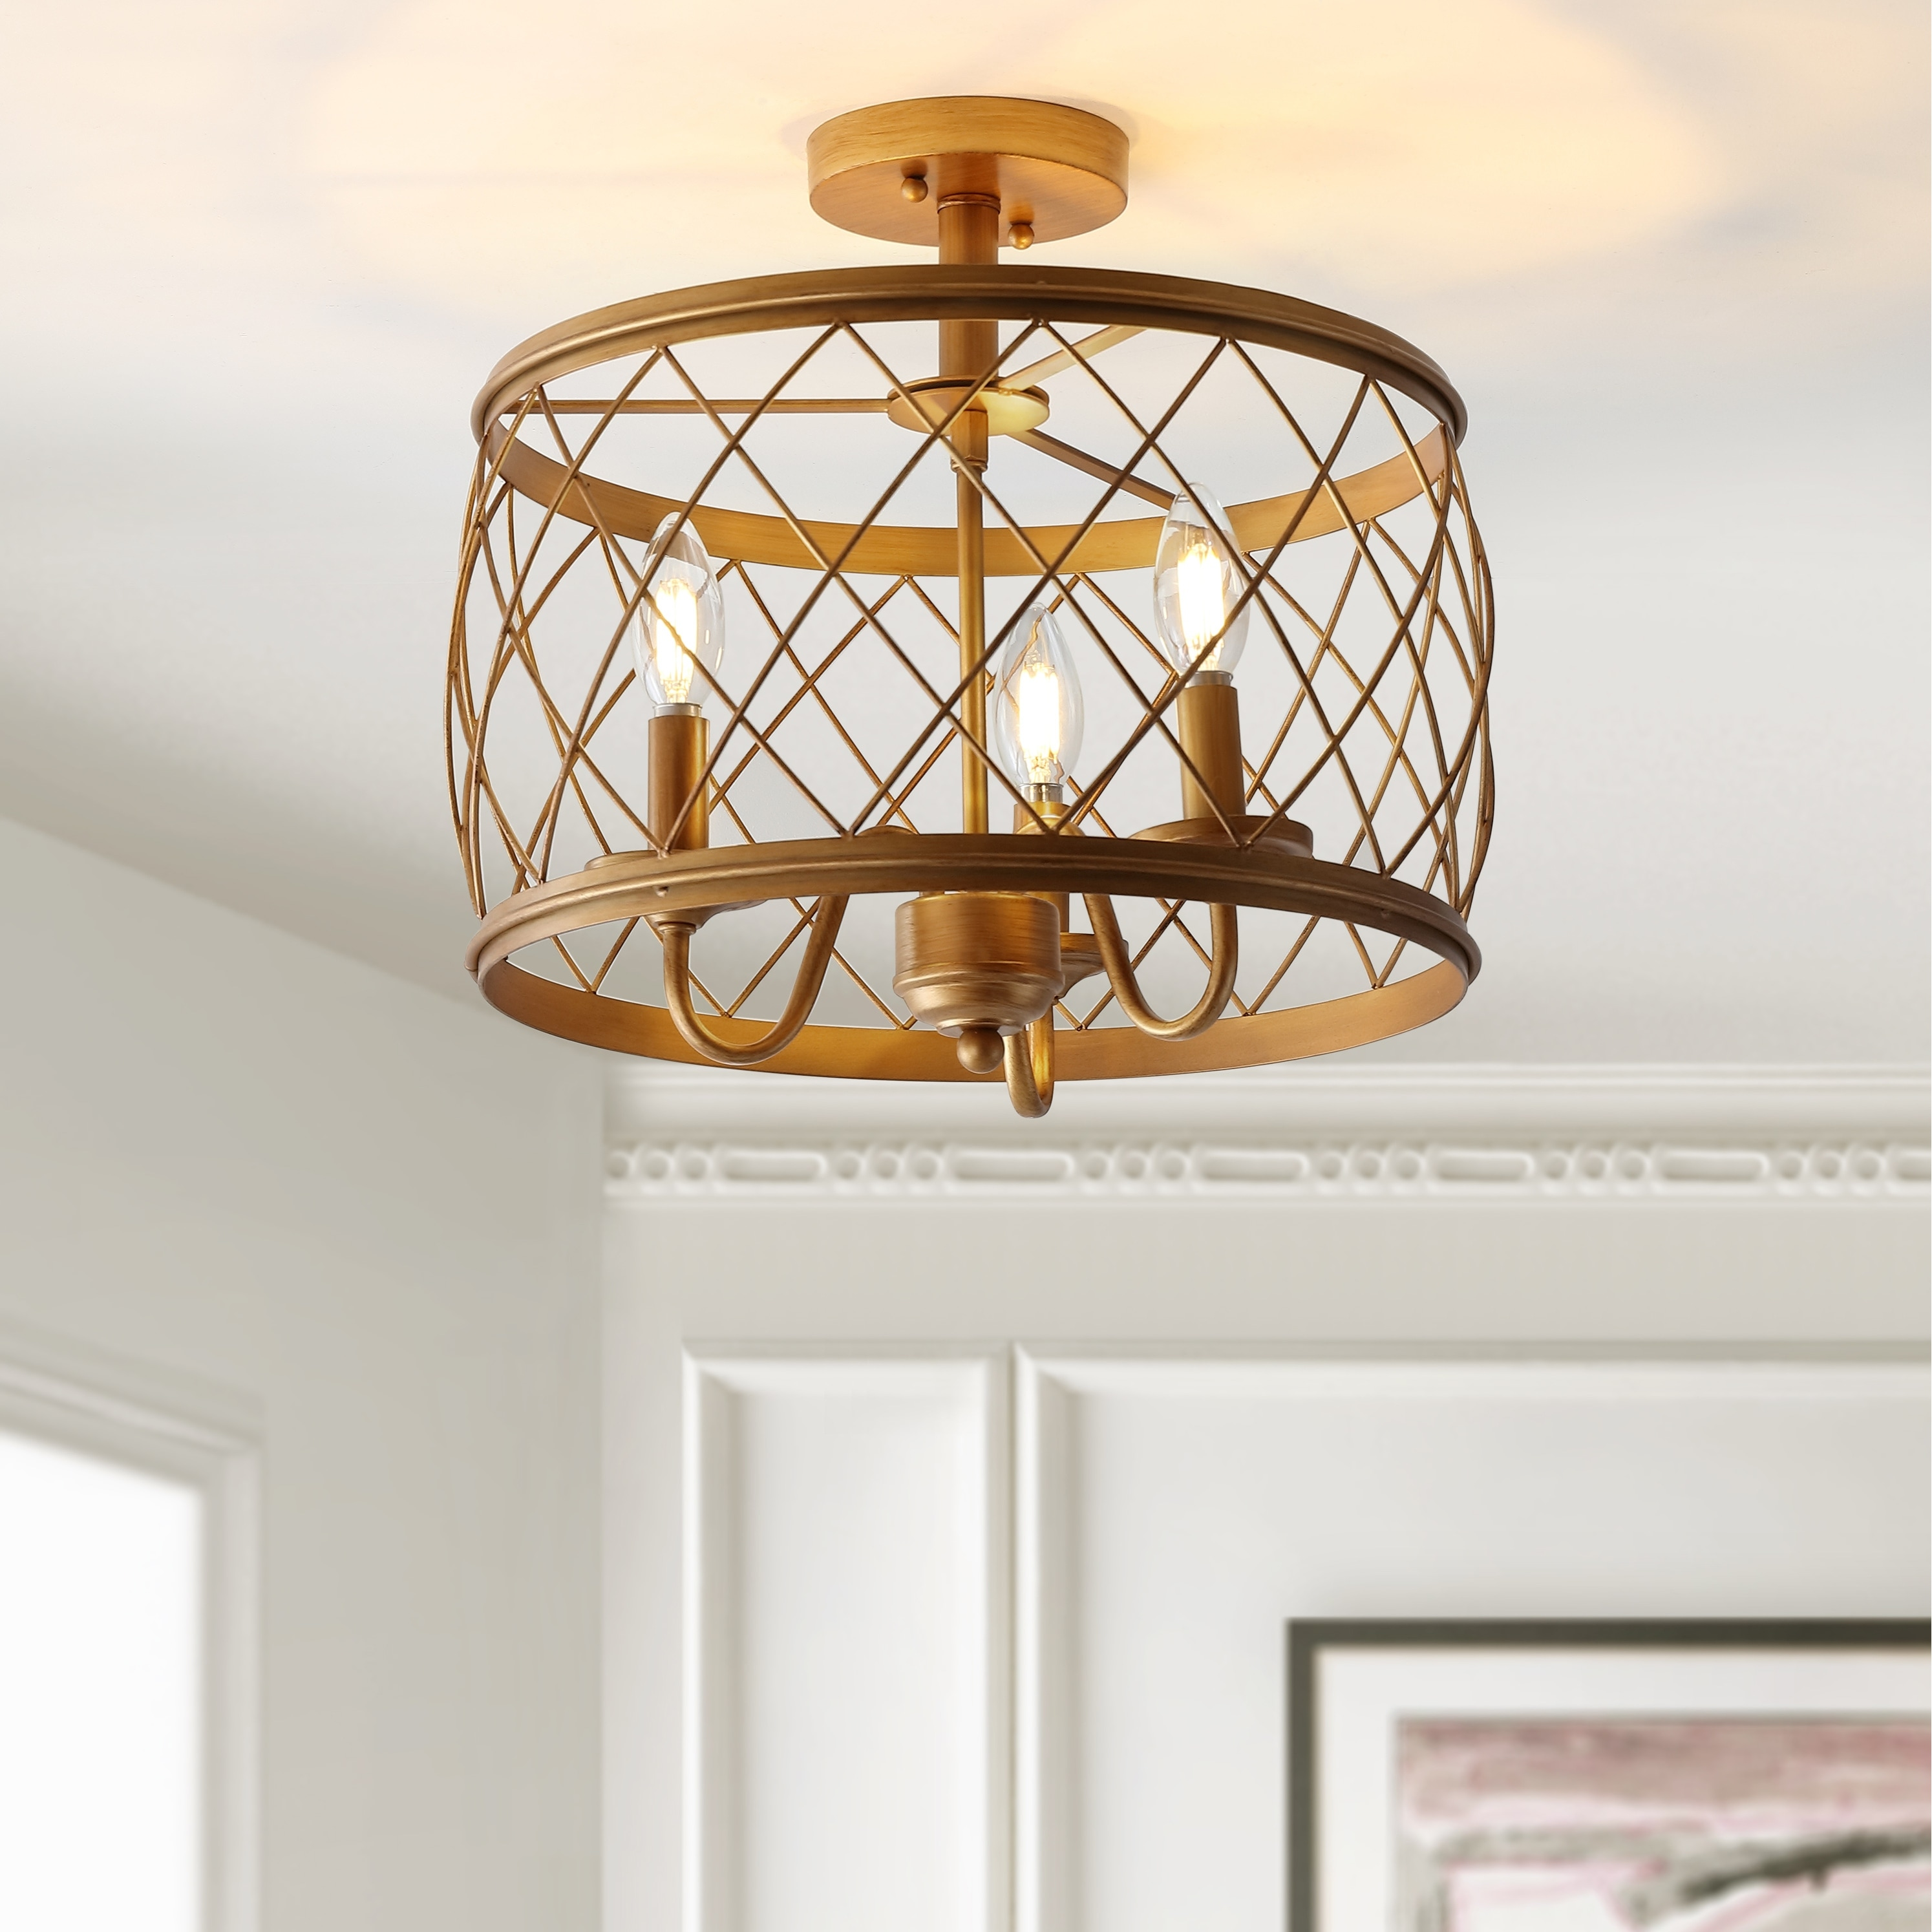 Image of: Shop Black Friday Deals On Eleanor 15 Metal Led Flush Mount Ceiling Light Gold By Jonathan Y Overstock 25858981